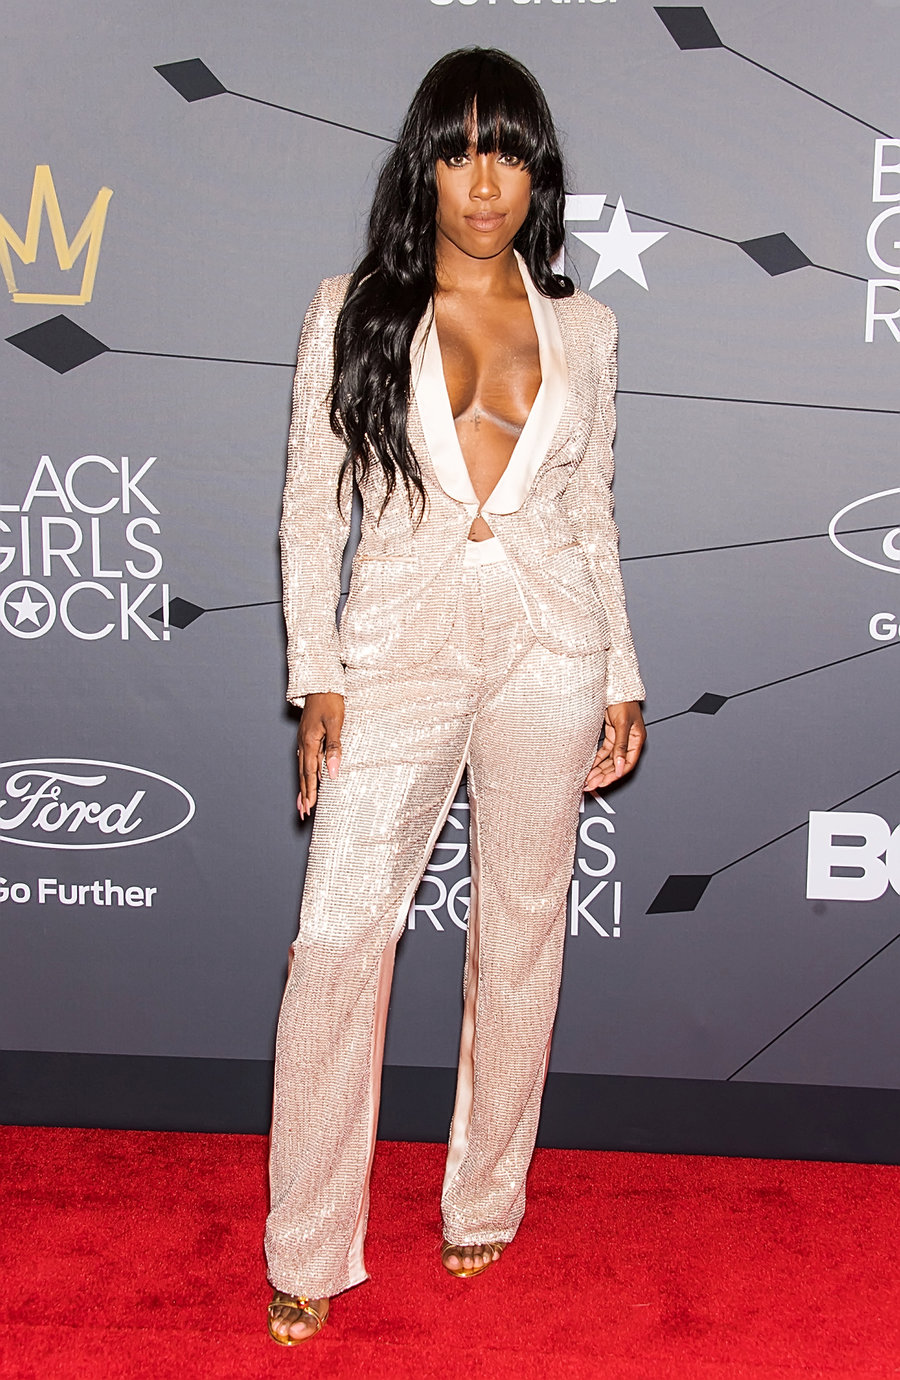 sevyn-streeter-black-girls-rock-red-carpet-2018-billboard-1240